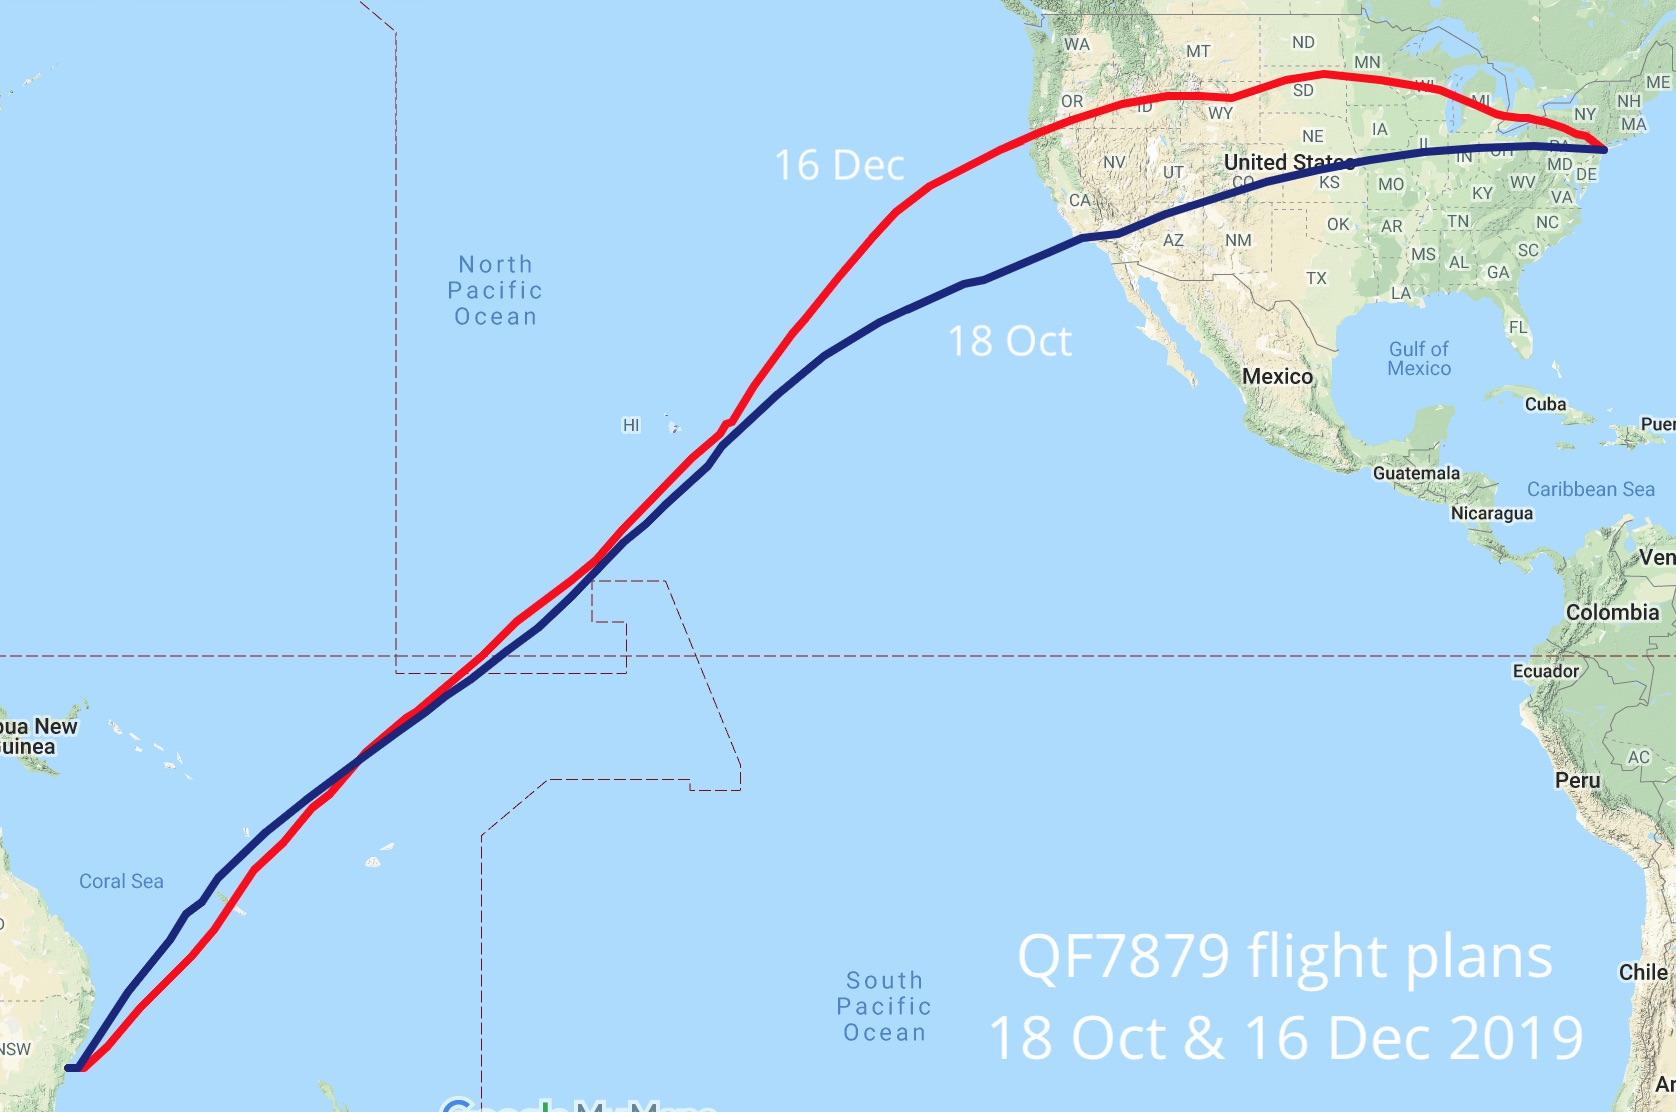 Planned flight paths of QF7879 on 18 October and 16 December